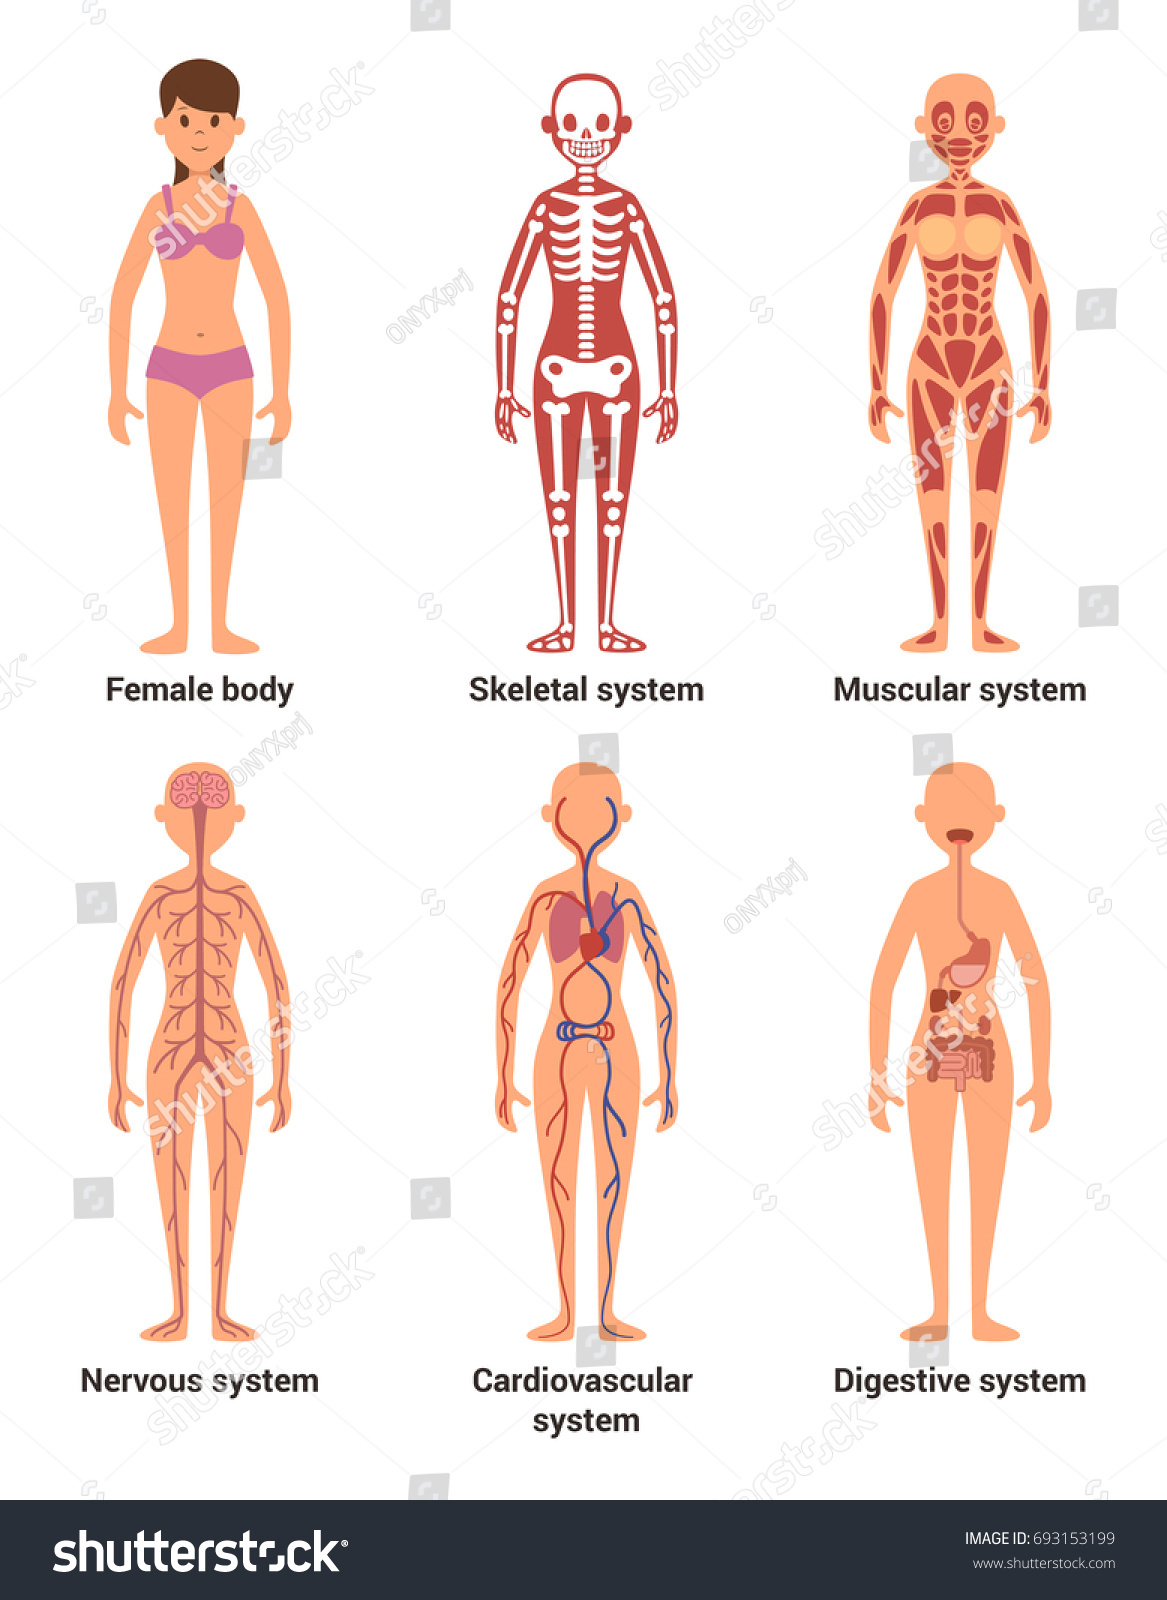 Anatomy Female Illustration Nerves Muscular Systems